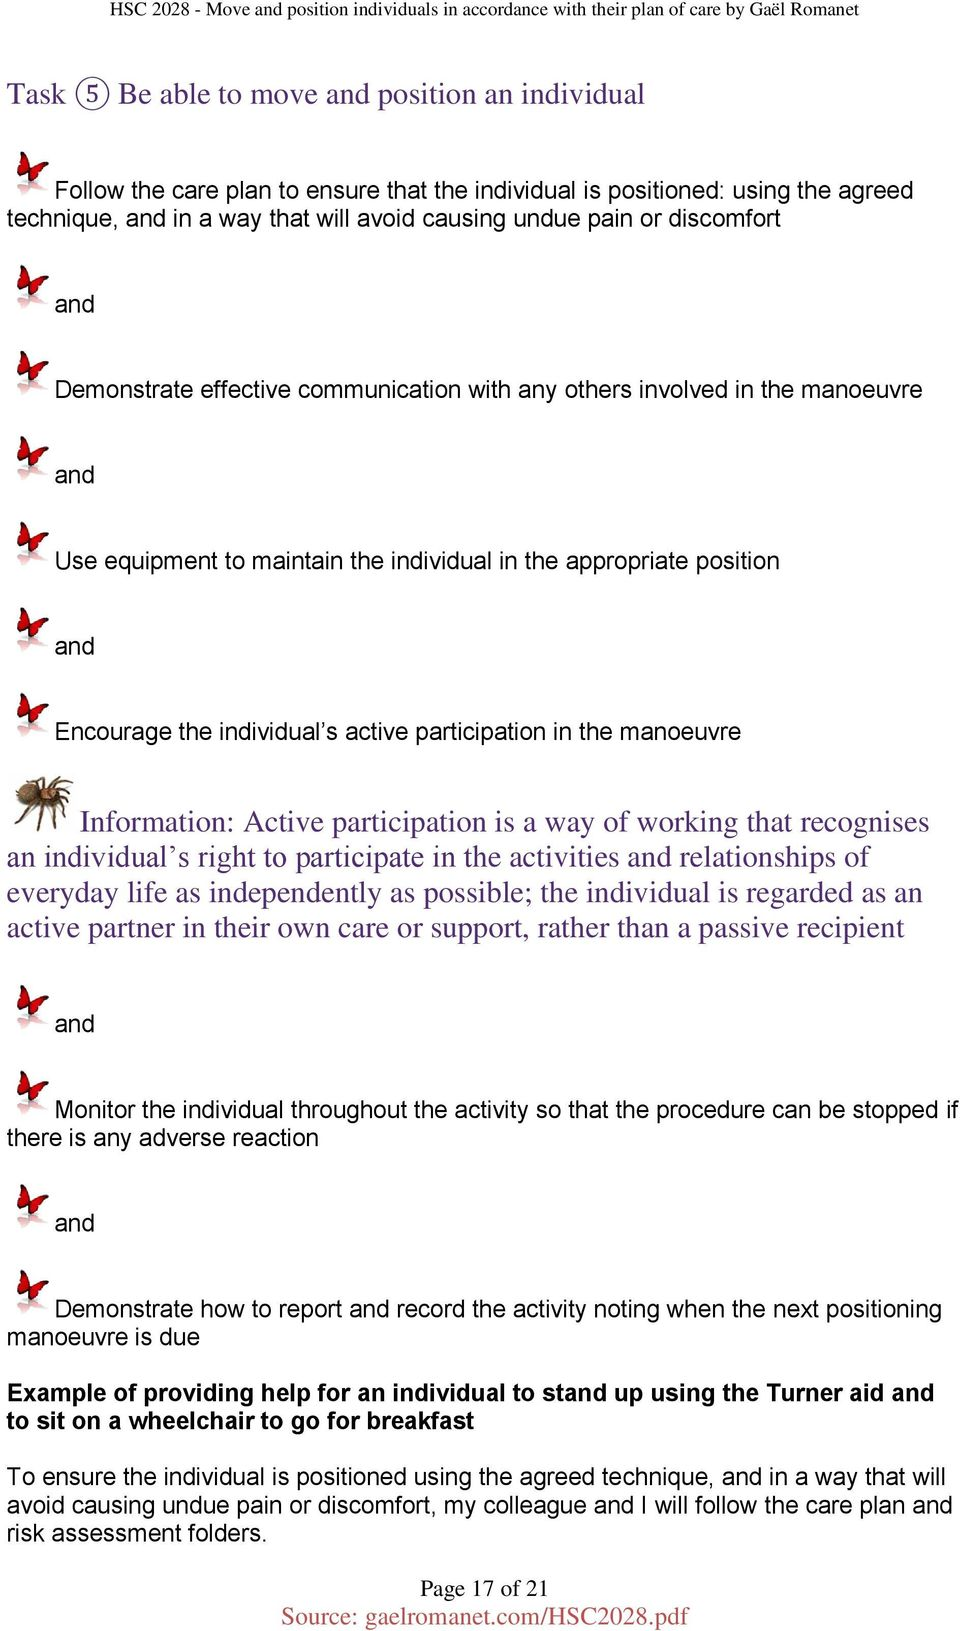 Move and position individuals in accordance with their plan of care active participation in the manoeuvre information active participation is a way of working that recognises fandeluxe Choice Image